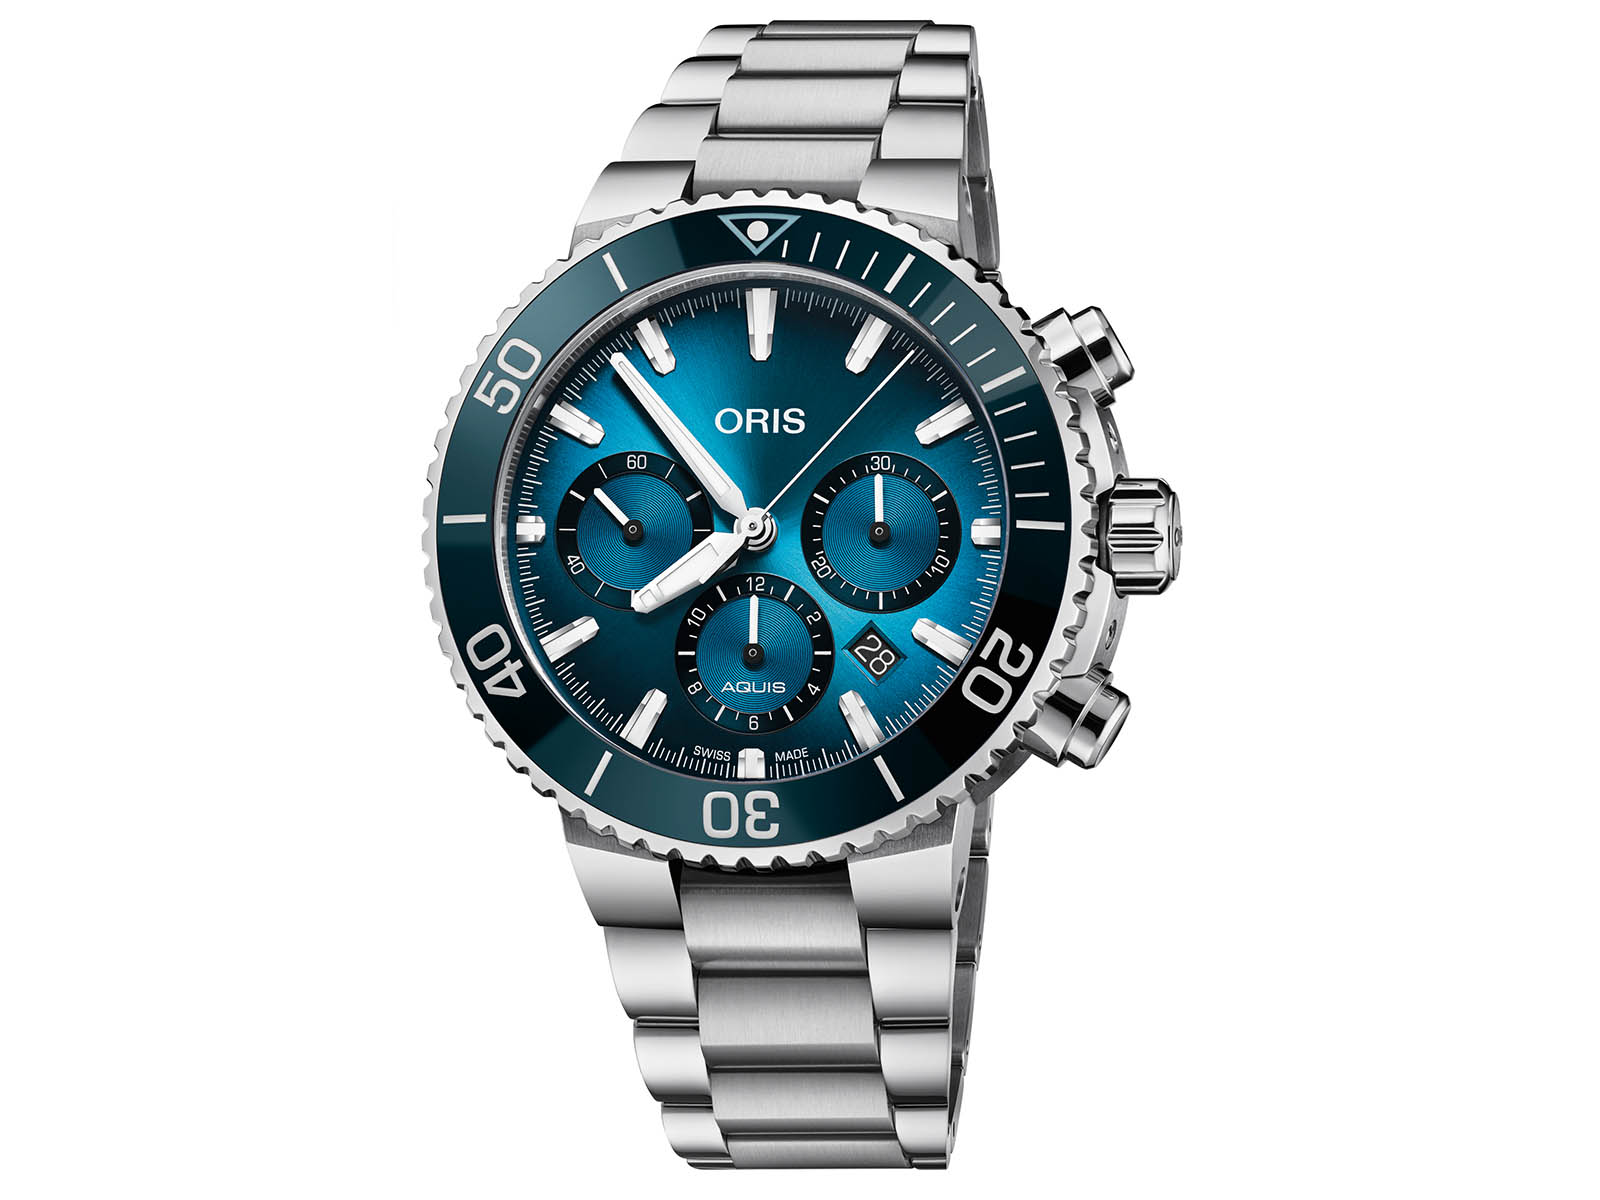 01-771-7743-4185-oris-blue-whale-limited-edition-1.jpg